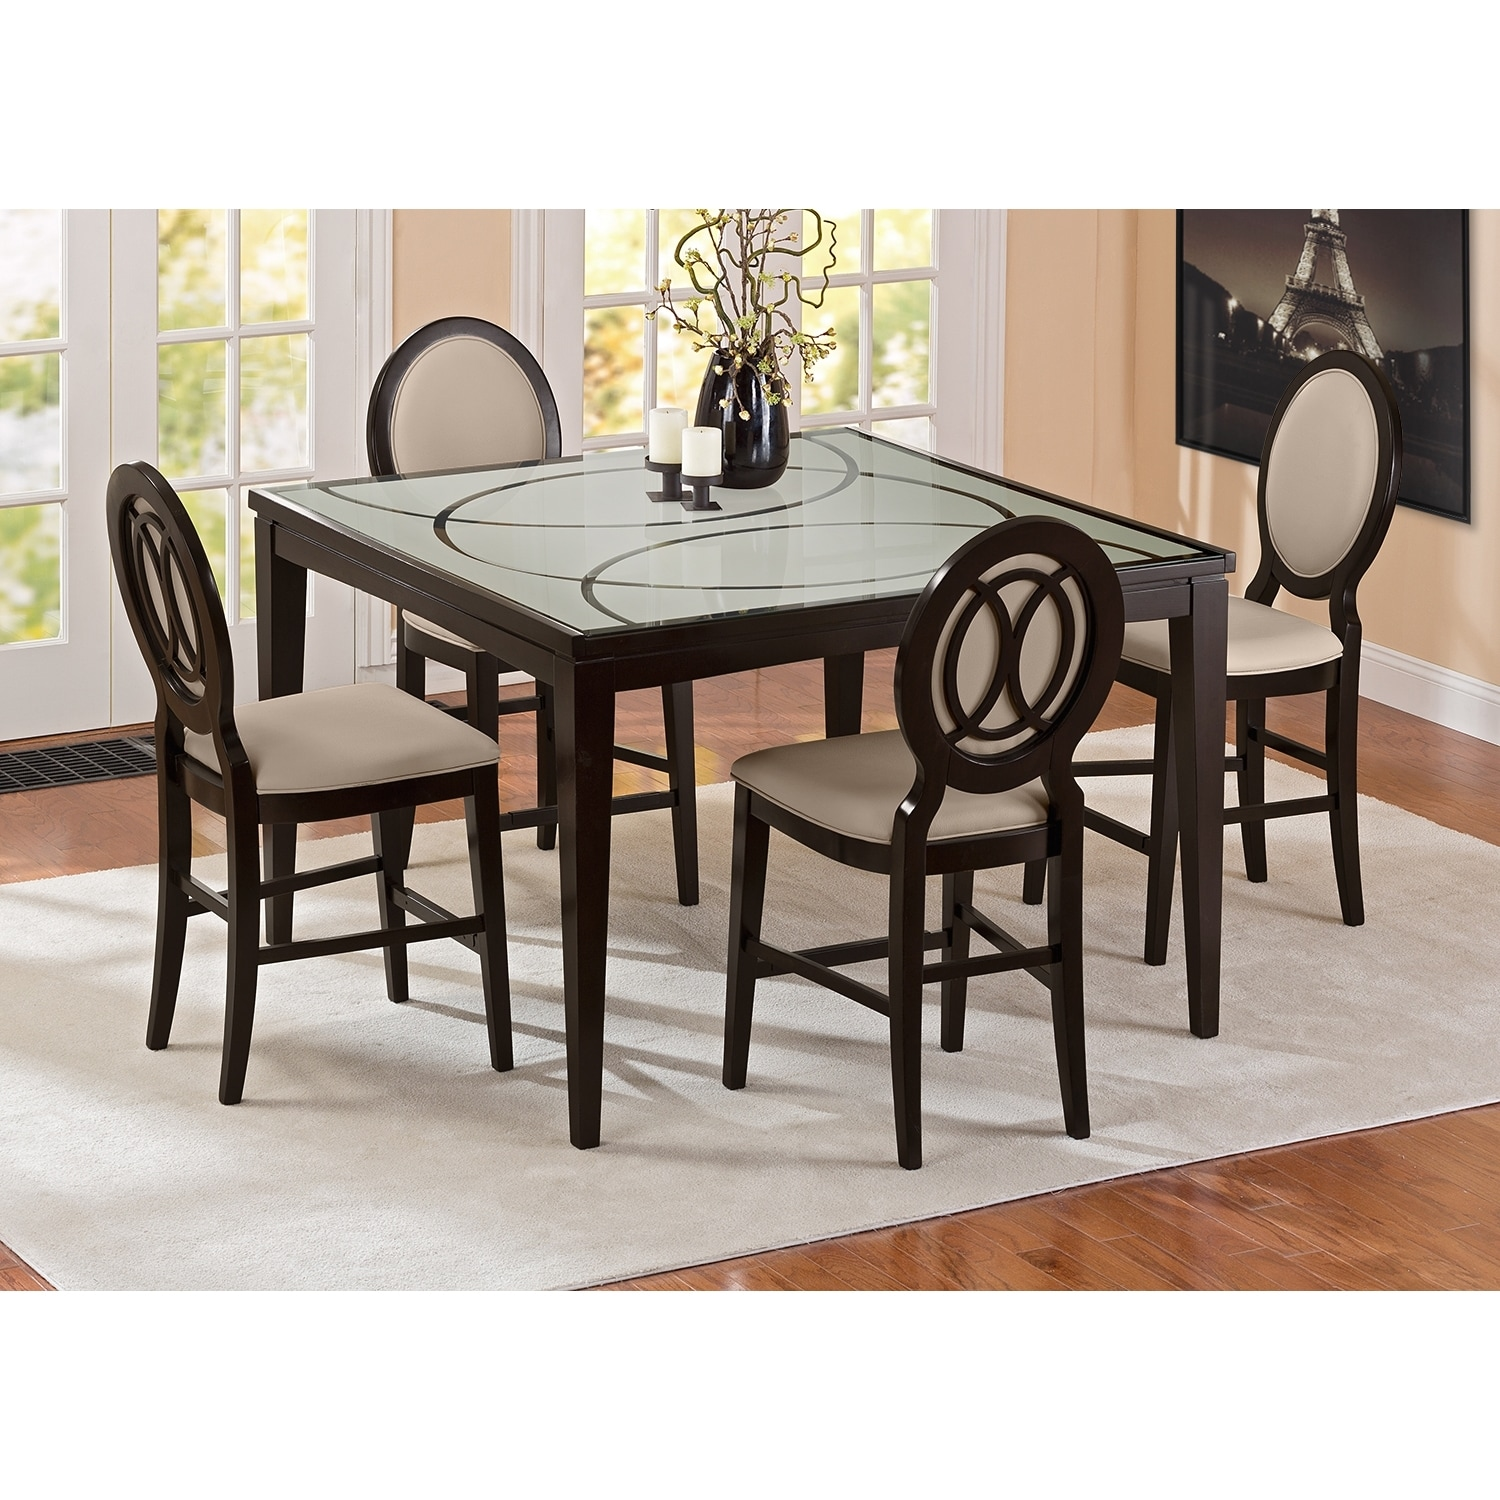 Cosmo Counter-Height Dining Table - Merlot | Value City Furniture ...